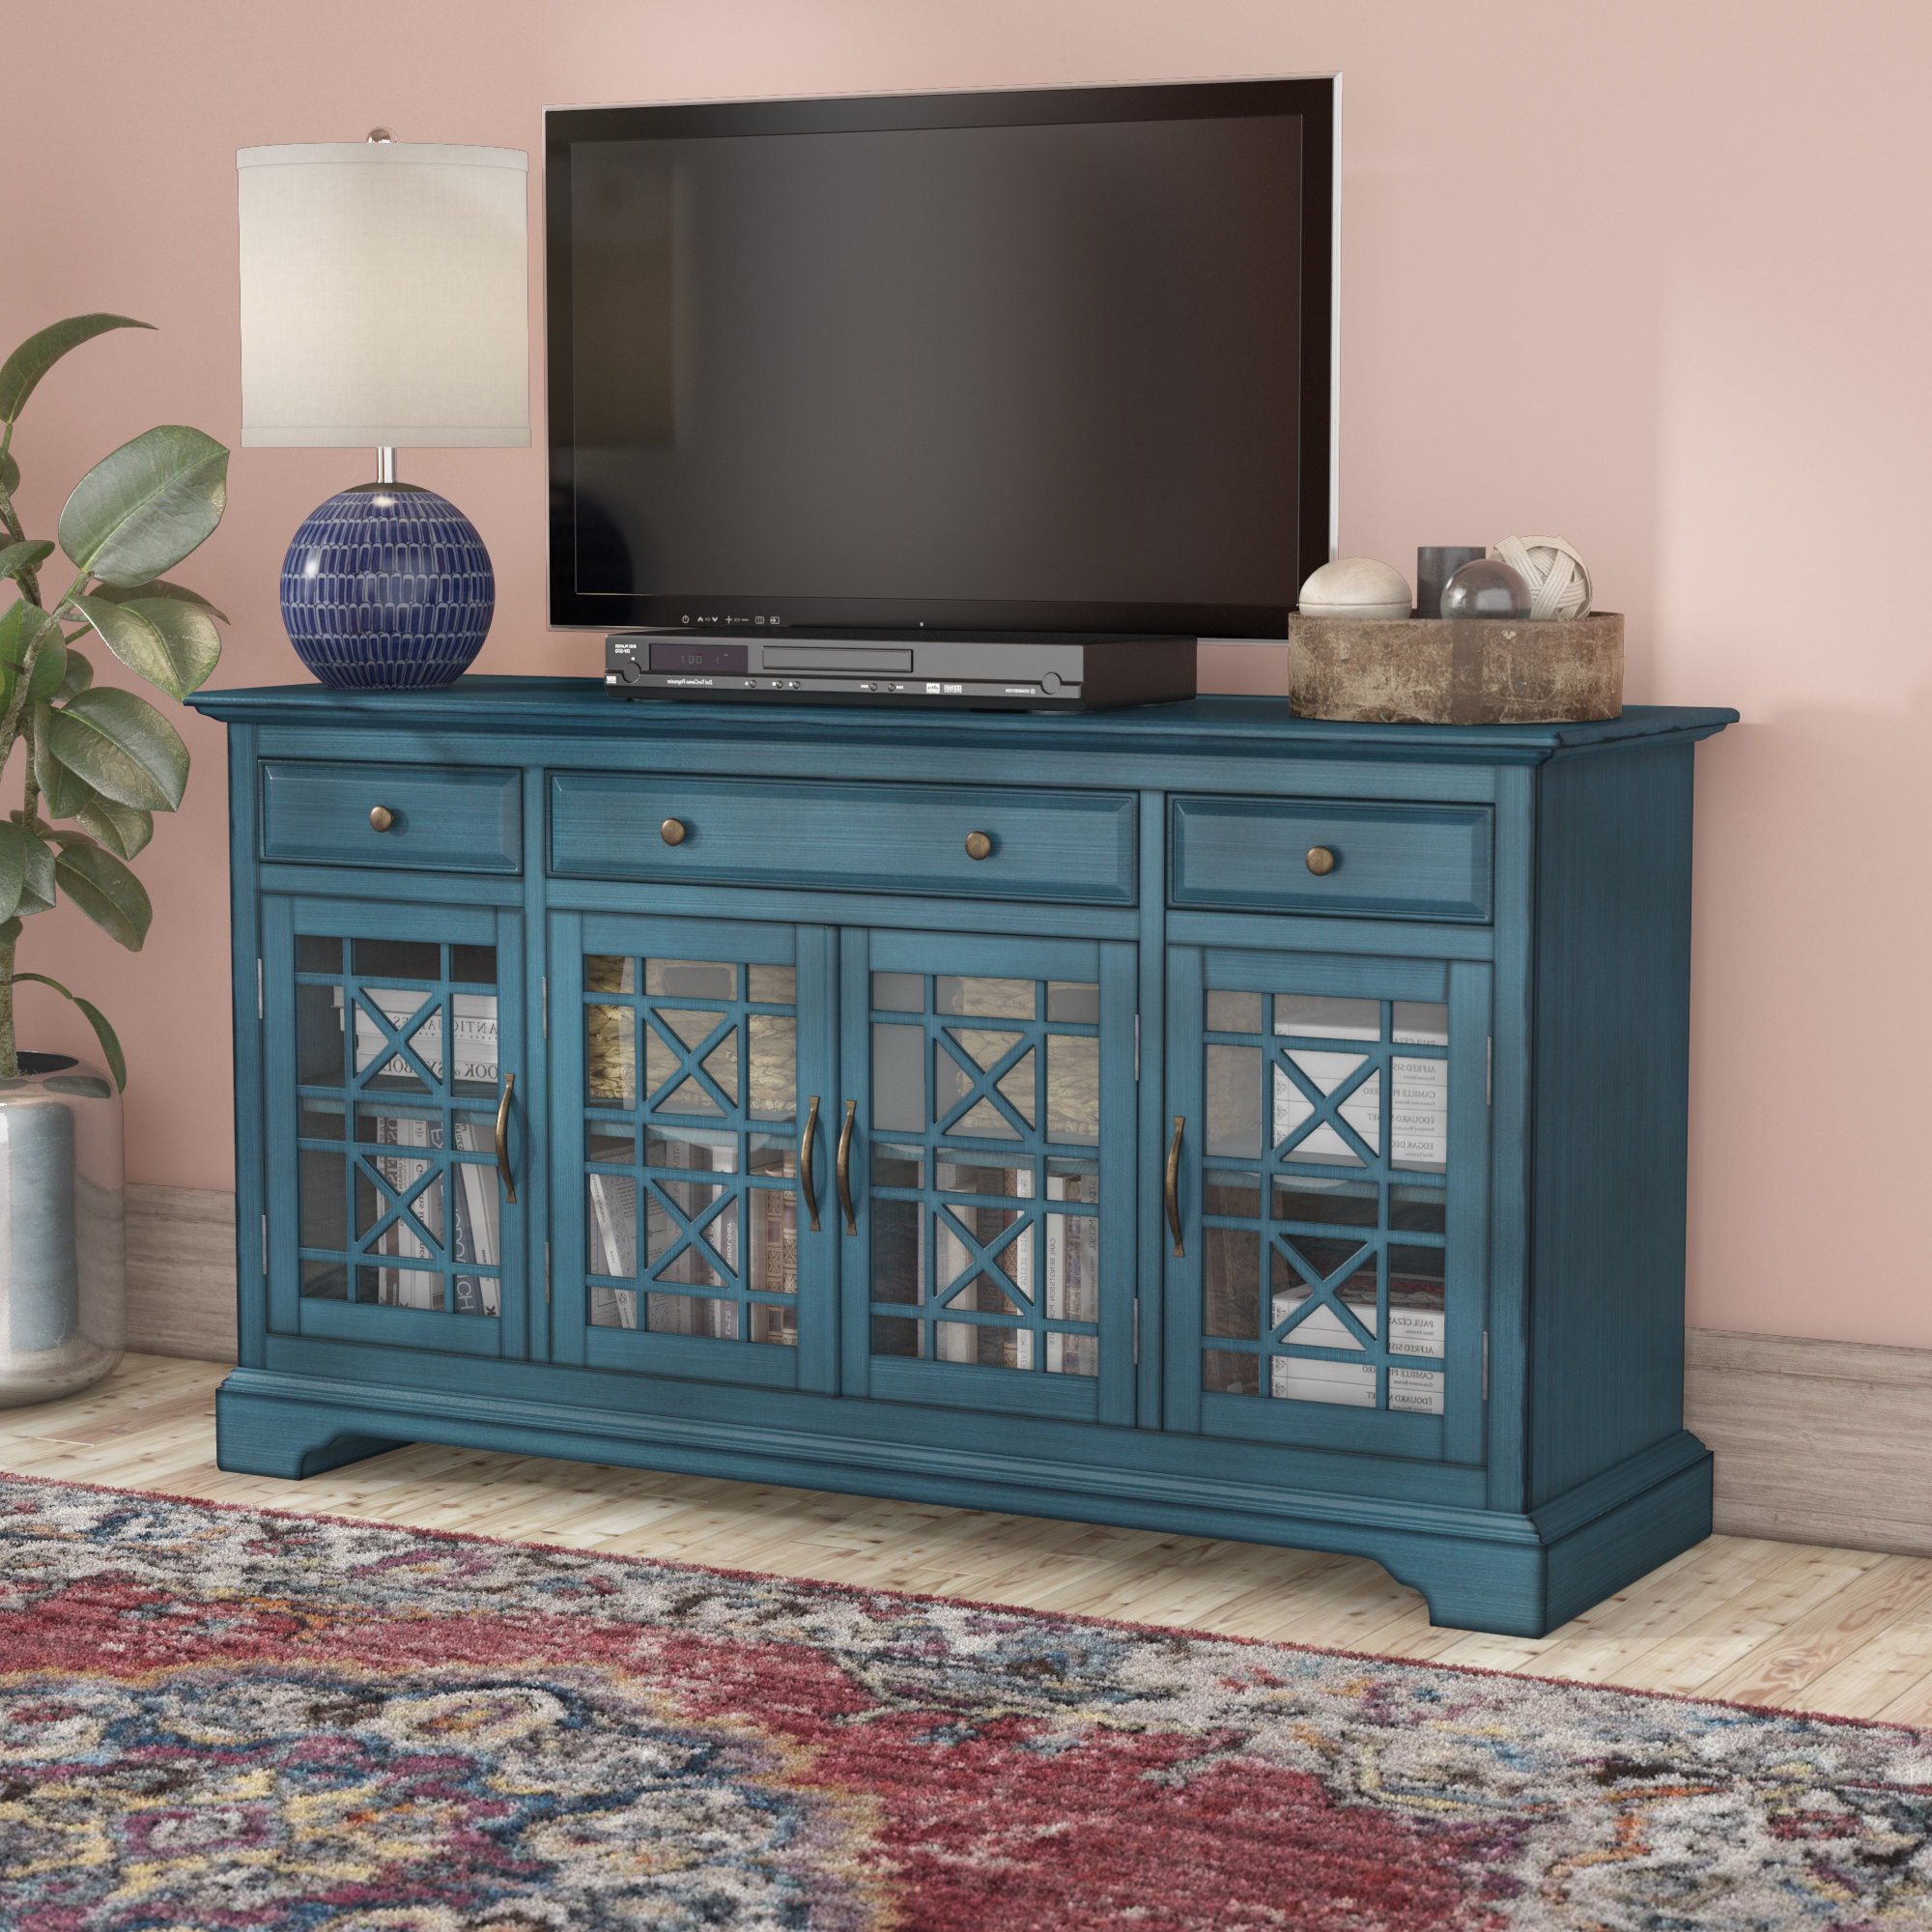 Blue Tv Stands You'll Love | Wayfair In Century Sky 60 Inch Tv Stands (View 7 of 20)